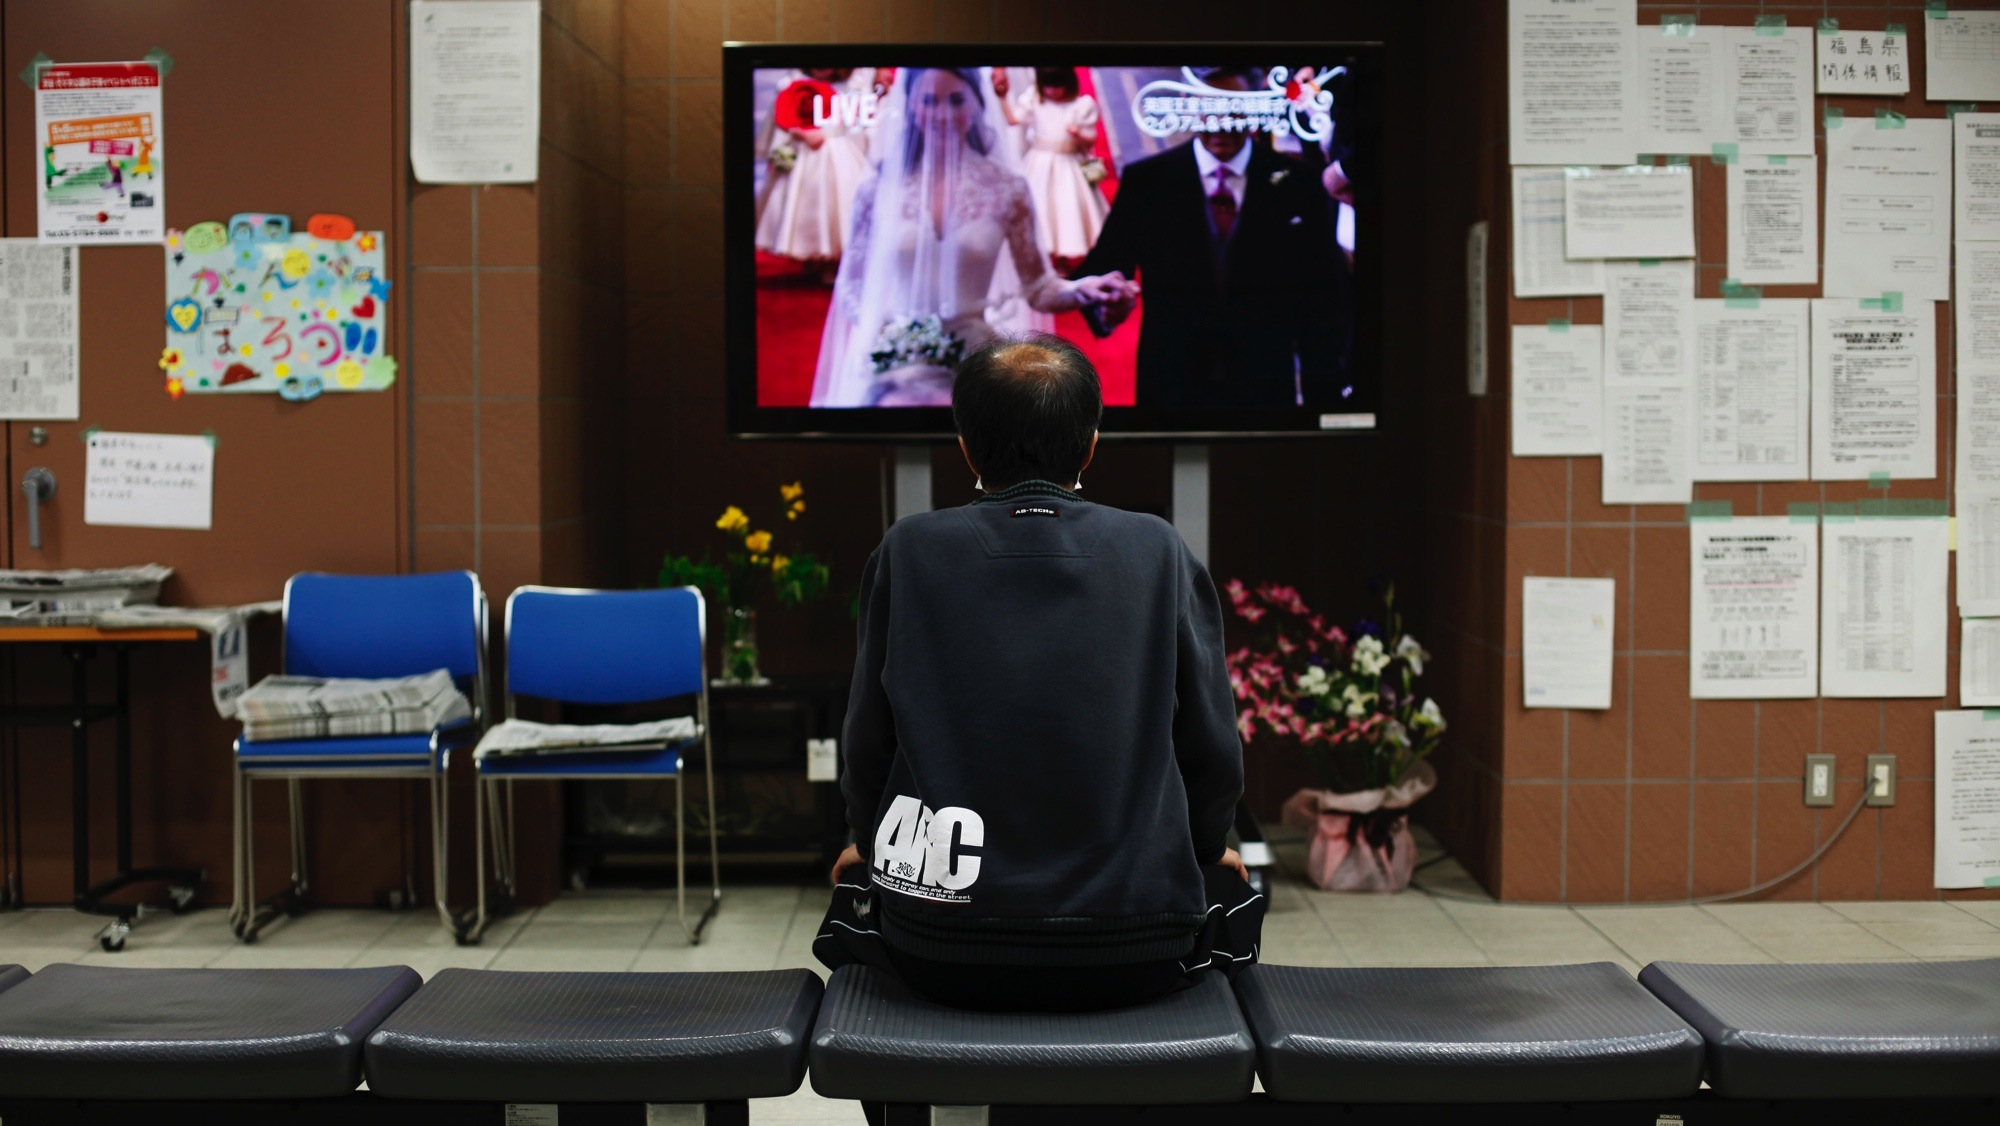 Hajime Ajima, an evacuee of the March 11 earthquake and tsunami, watches a TV broadcast of the wedding of Britain's Prince William and Kate Middleton in London, at a gymnasium converted into an evacuation center, inside Ajinomoto stadium in Chofu, western Tokyo April 29, 2011. (ROYAL WEDDING/PUBLIC)  REUTERS/Toru Hanai (JAPAN - Tags: DISASTER ROYALS ENTERTAINMENT SOCIETY) - RTR2LR6N